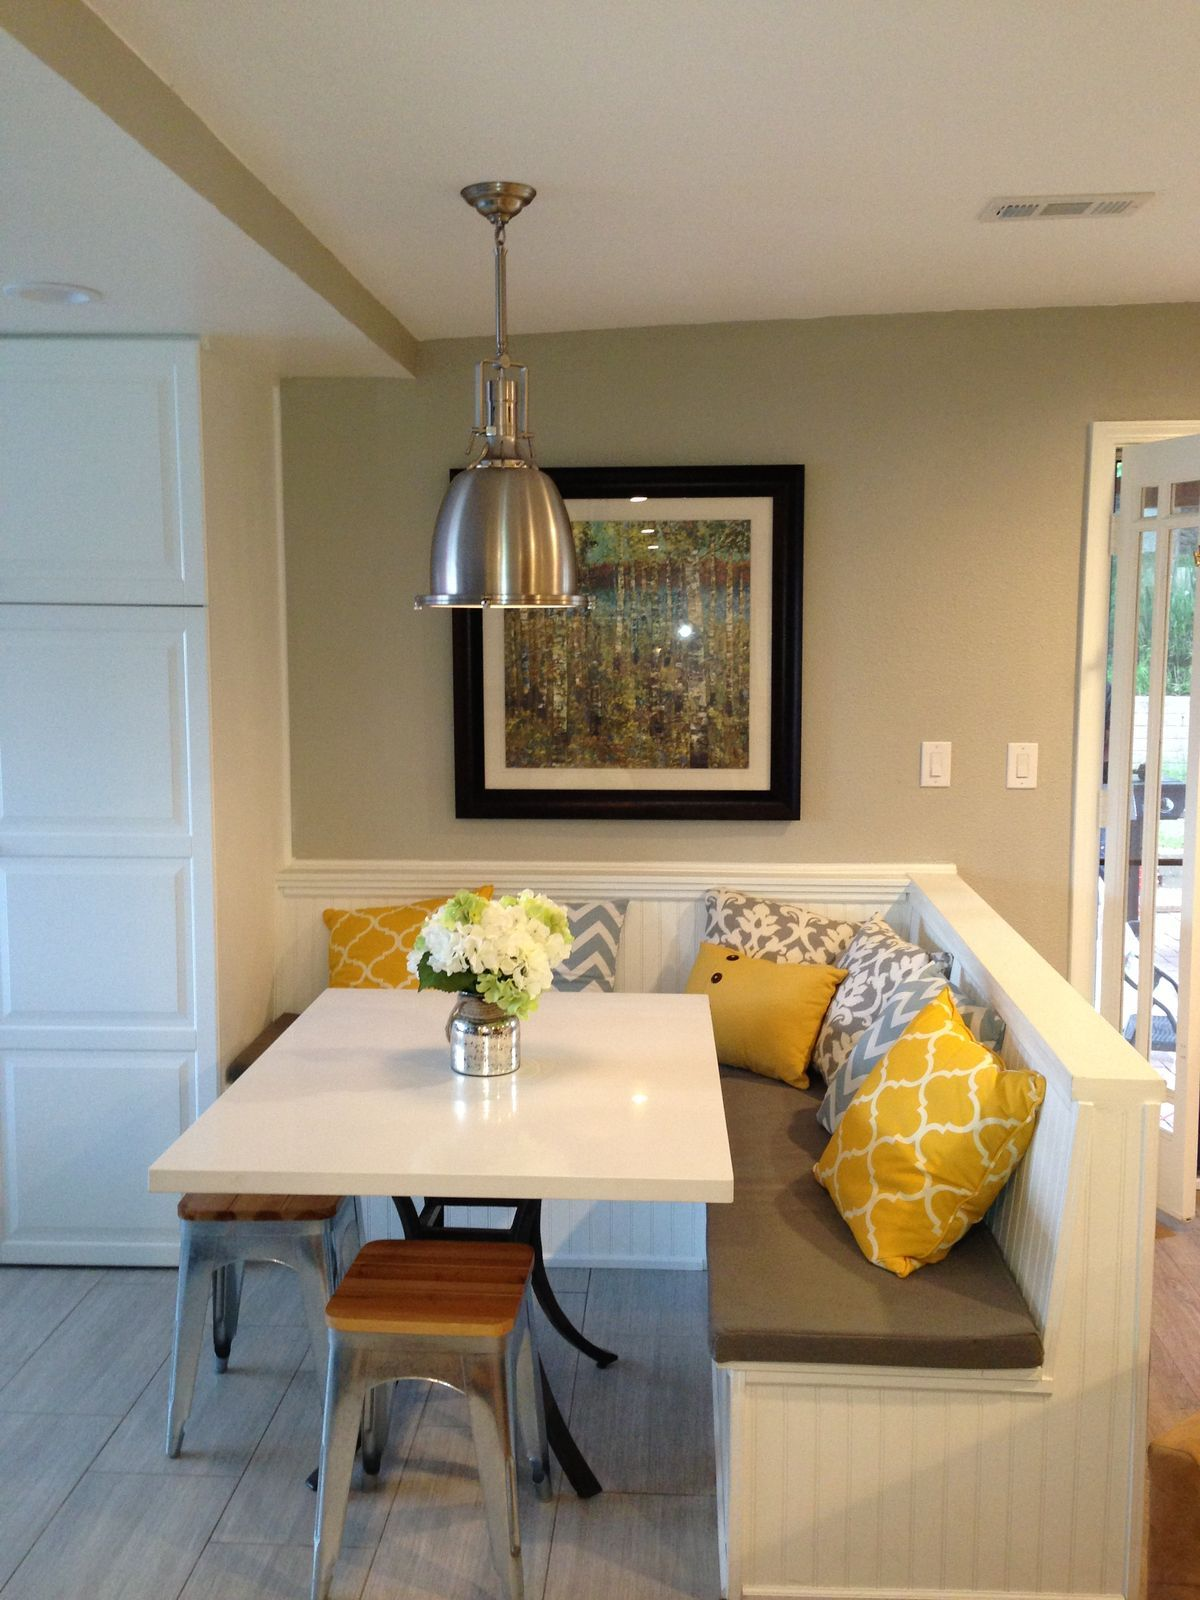 Kitchen table benches  Benches for dining area  Home  Pinterest  Bench Dining and Kitchens